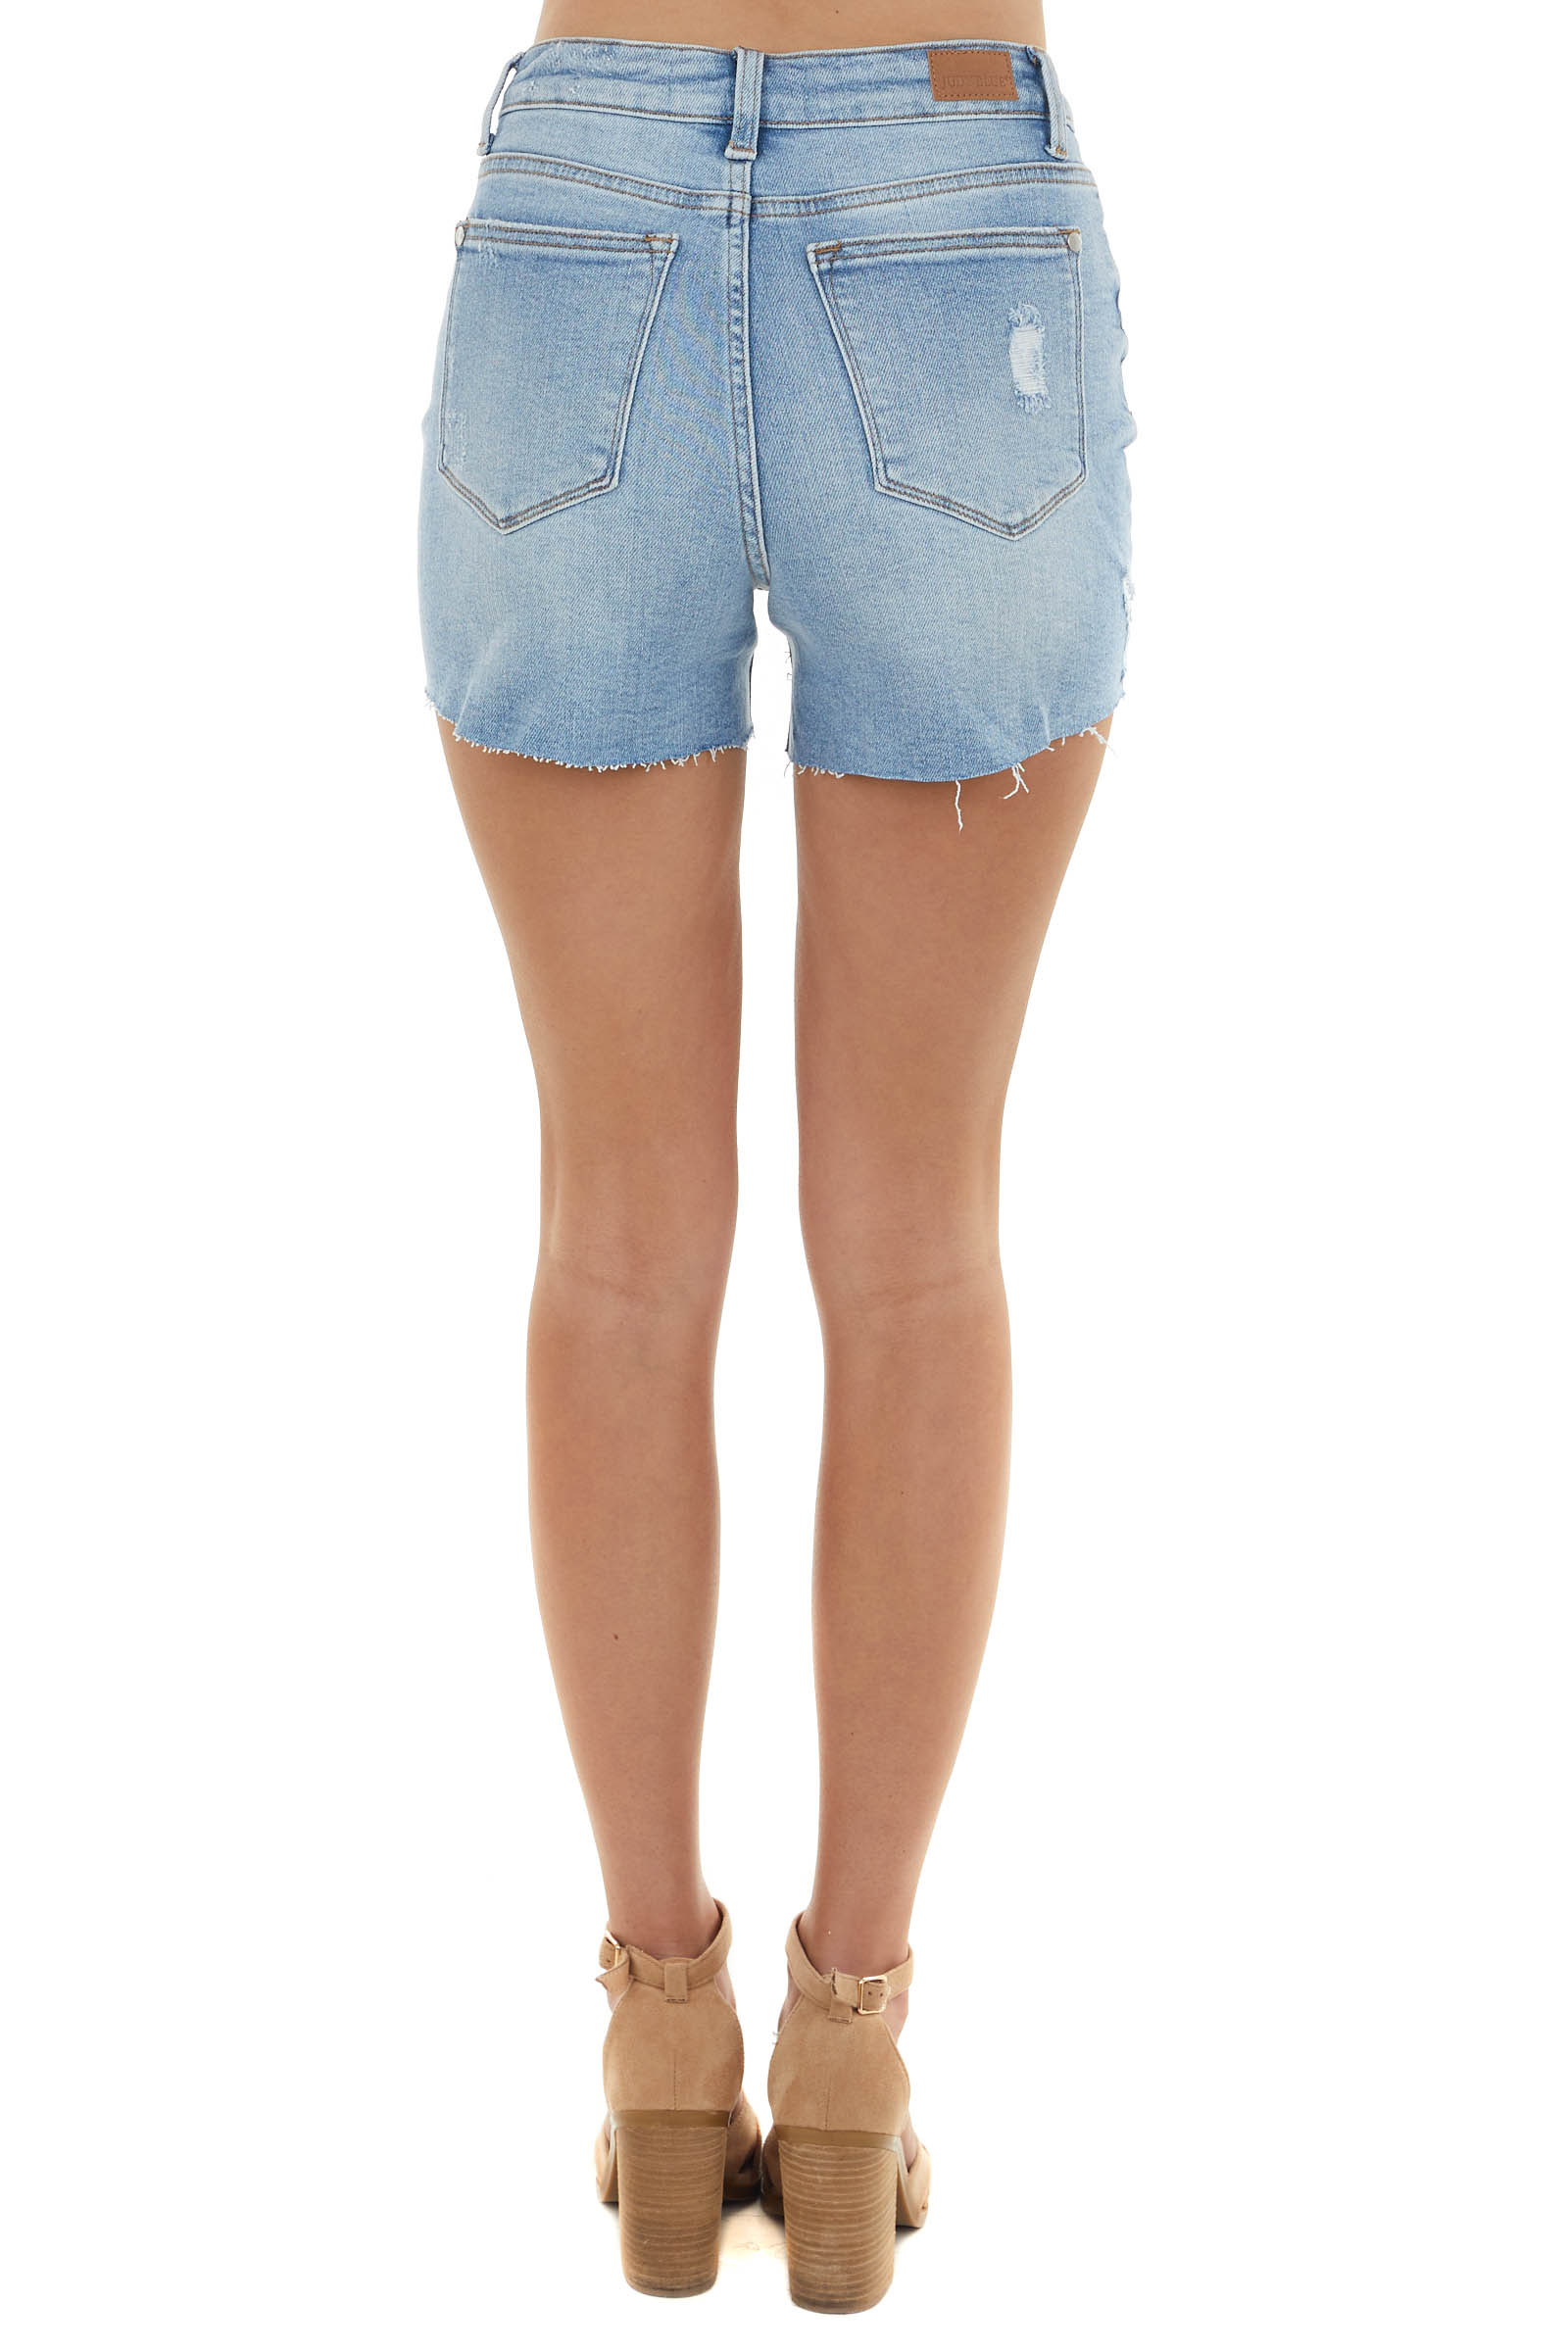 Light Wash Denim Shorts with Distressed Detail